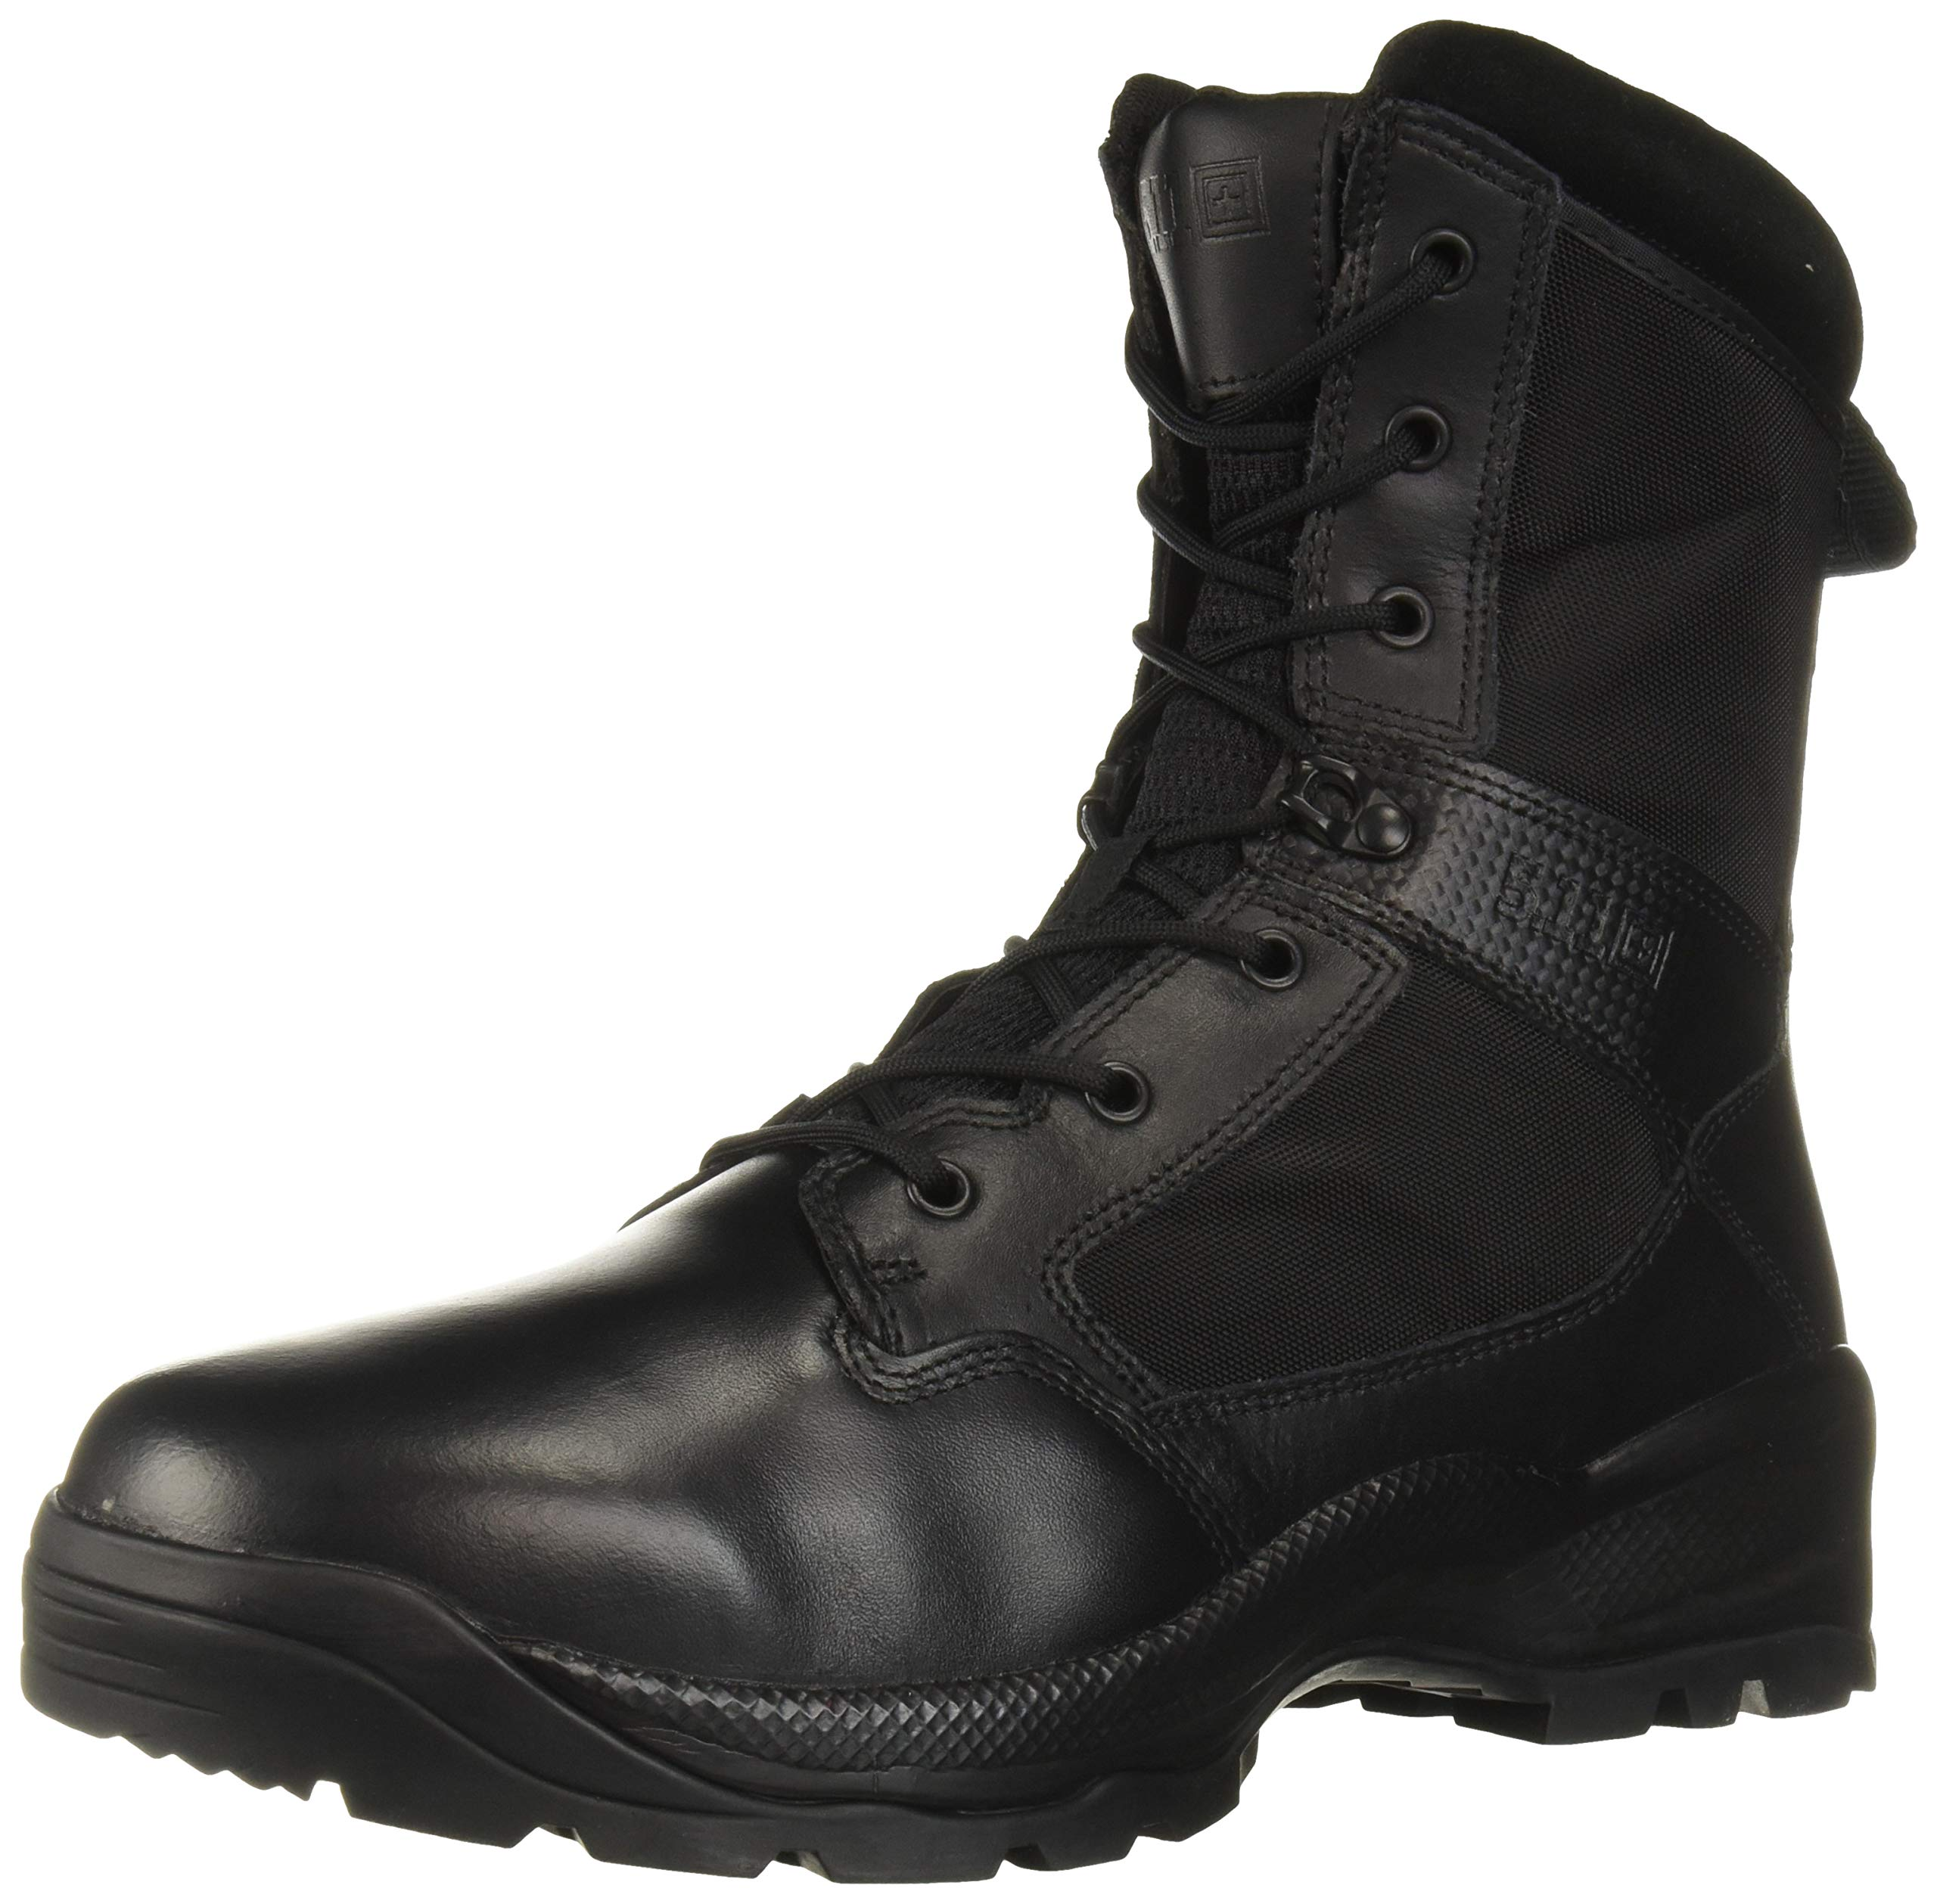 5.11 Men's ATAC 2.0 8'' Military Tactical Boot, Style 12391, Black, 10 Regular by 5.11